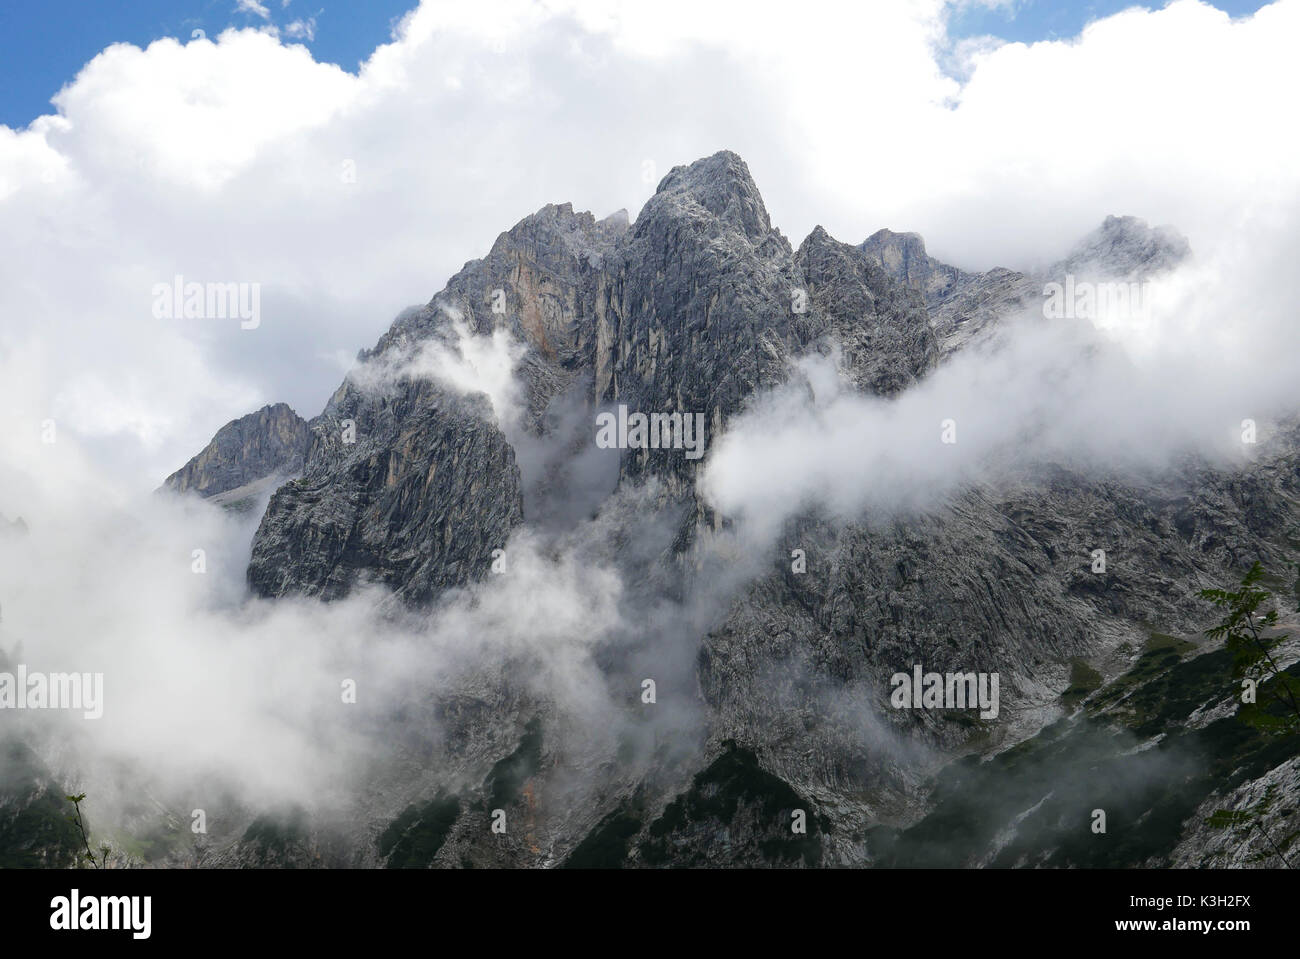 Partenkirchener Dreitorspitze and Dom from the upper Reintal after deduction of a weather front - Stock Image